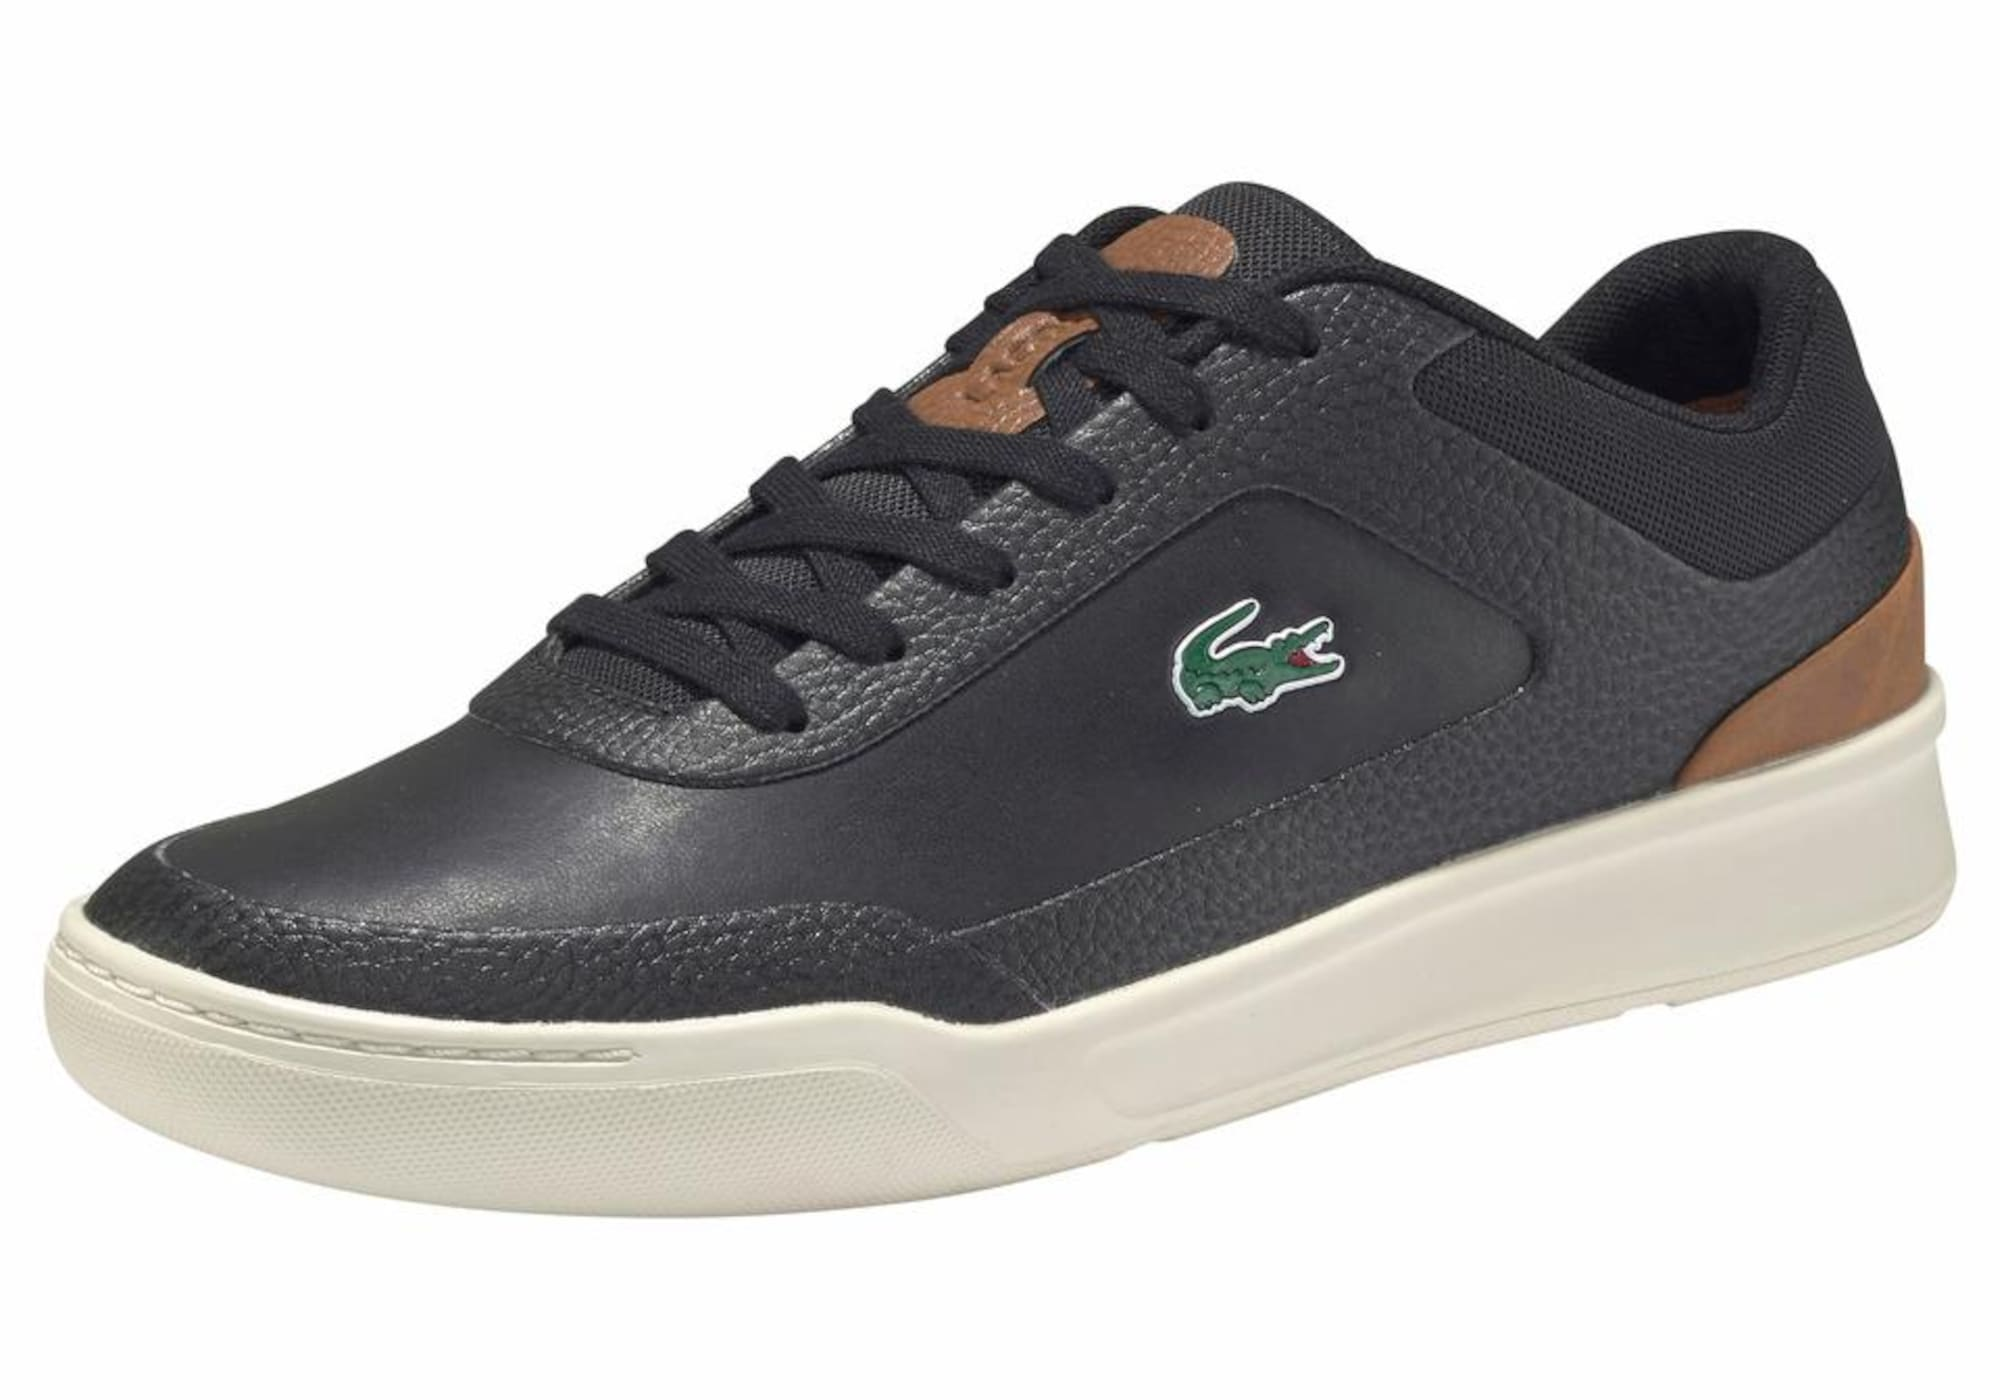 Baskets Basses Lacoste Chaymon 116 1 Spm Dk Brwblk Nike Chaussures de basketball Super Fly 2017 Low Nike soldes Geox Boots U54N1D0022 Chaussures de ville Homme Coffee Geox soldes Timberland Boots 6in Premium Boot Timberland soldes Baskets Basses Lacoste Chaymon 116 1 Spm Dk Brwblk Dr Martens Boots Lea Dr Martens soldes aMJMLqY